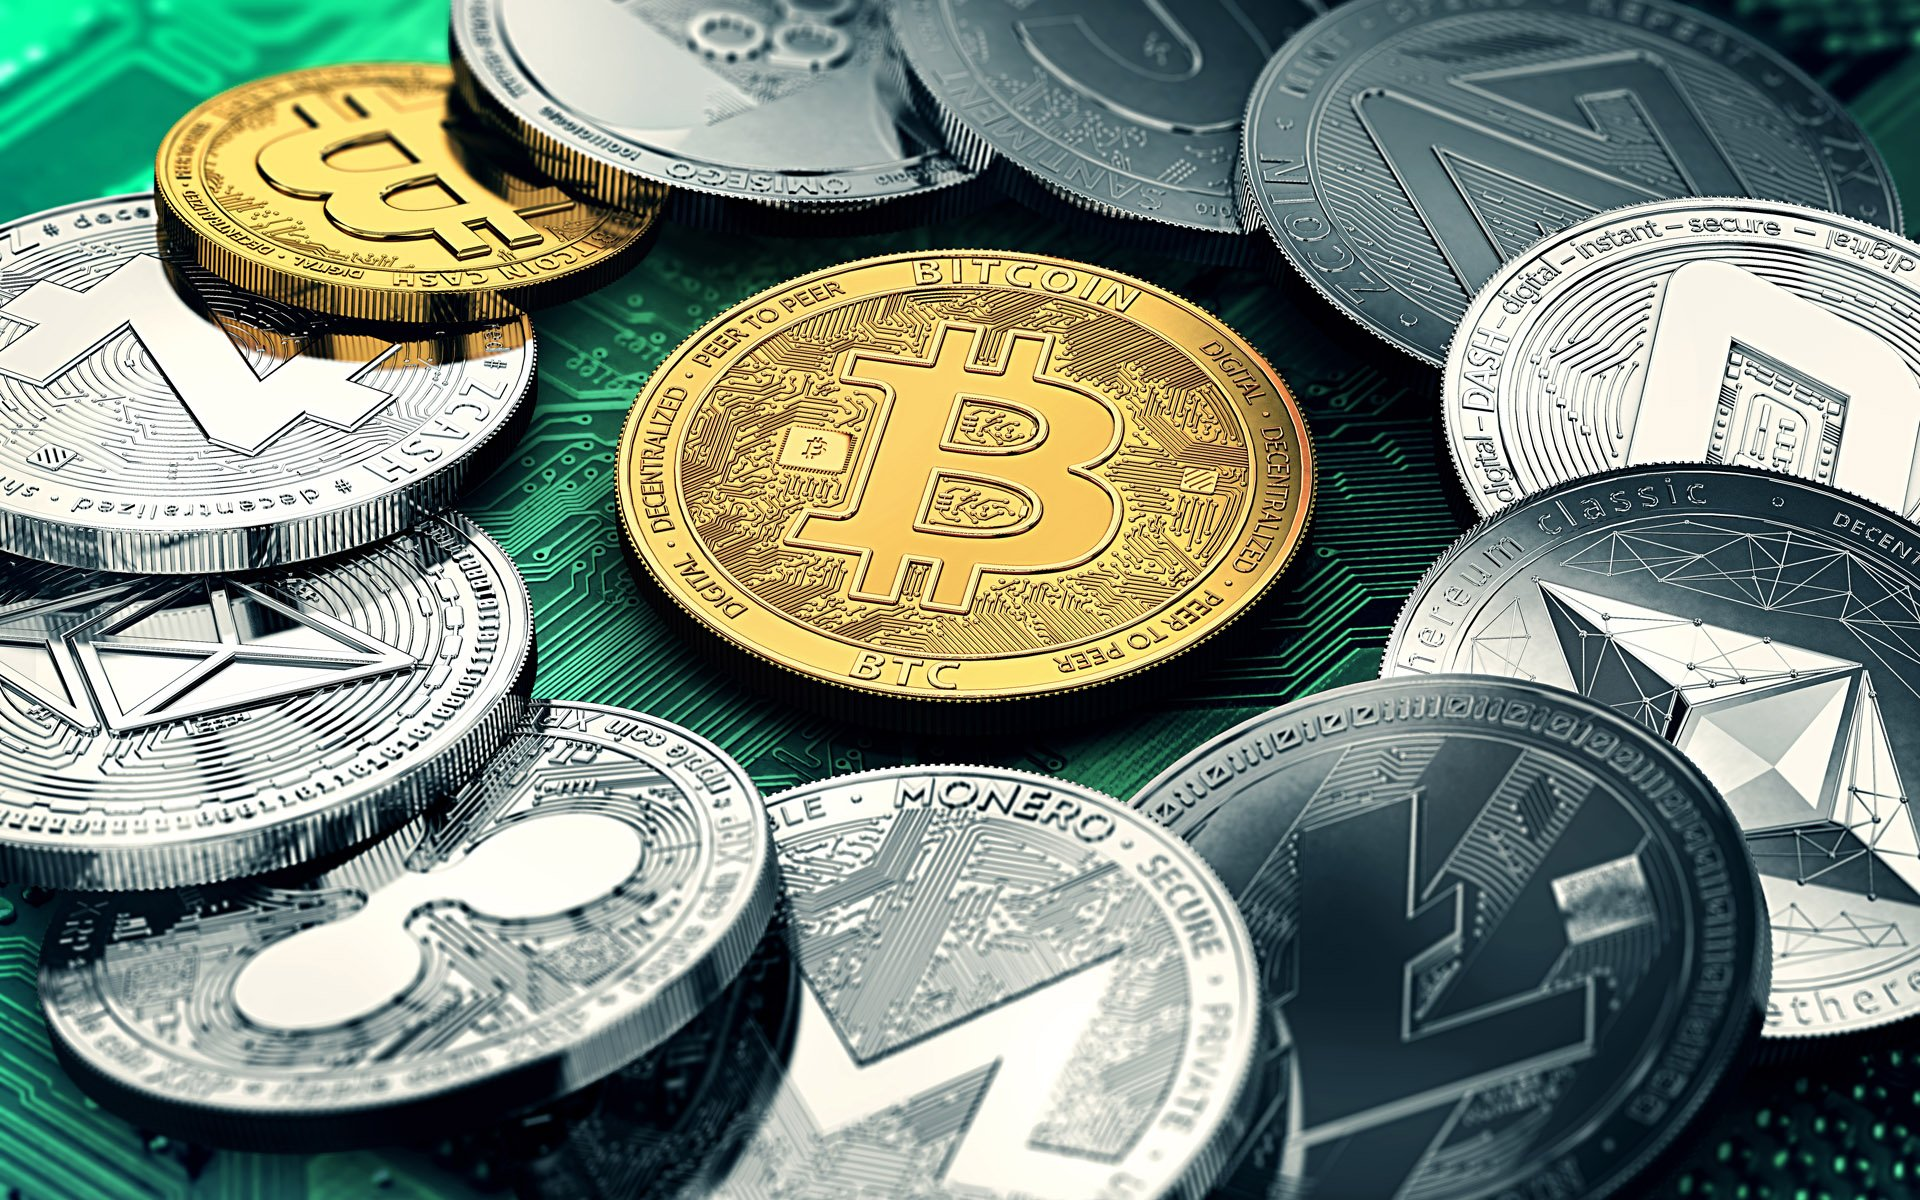 Today In Cryptocurrency: Former Goldman Sachs (NYSE:GS) Exec Rips Bitcoin, Fed Report Shows Futures Dented Crypto Valuations - BenzingaToday In Cryptocurrency: Former Goldman Sachs (NYSE:GS) Exec Rips Bitcoin, Fed Report Shows Futures Dented Crypto Valuations - 웹